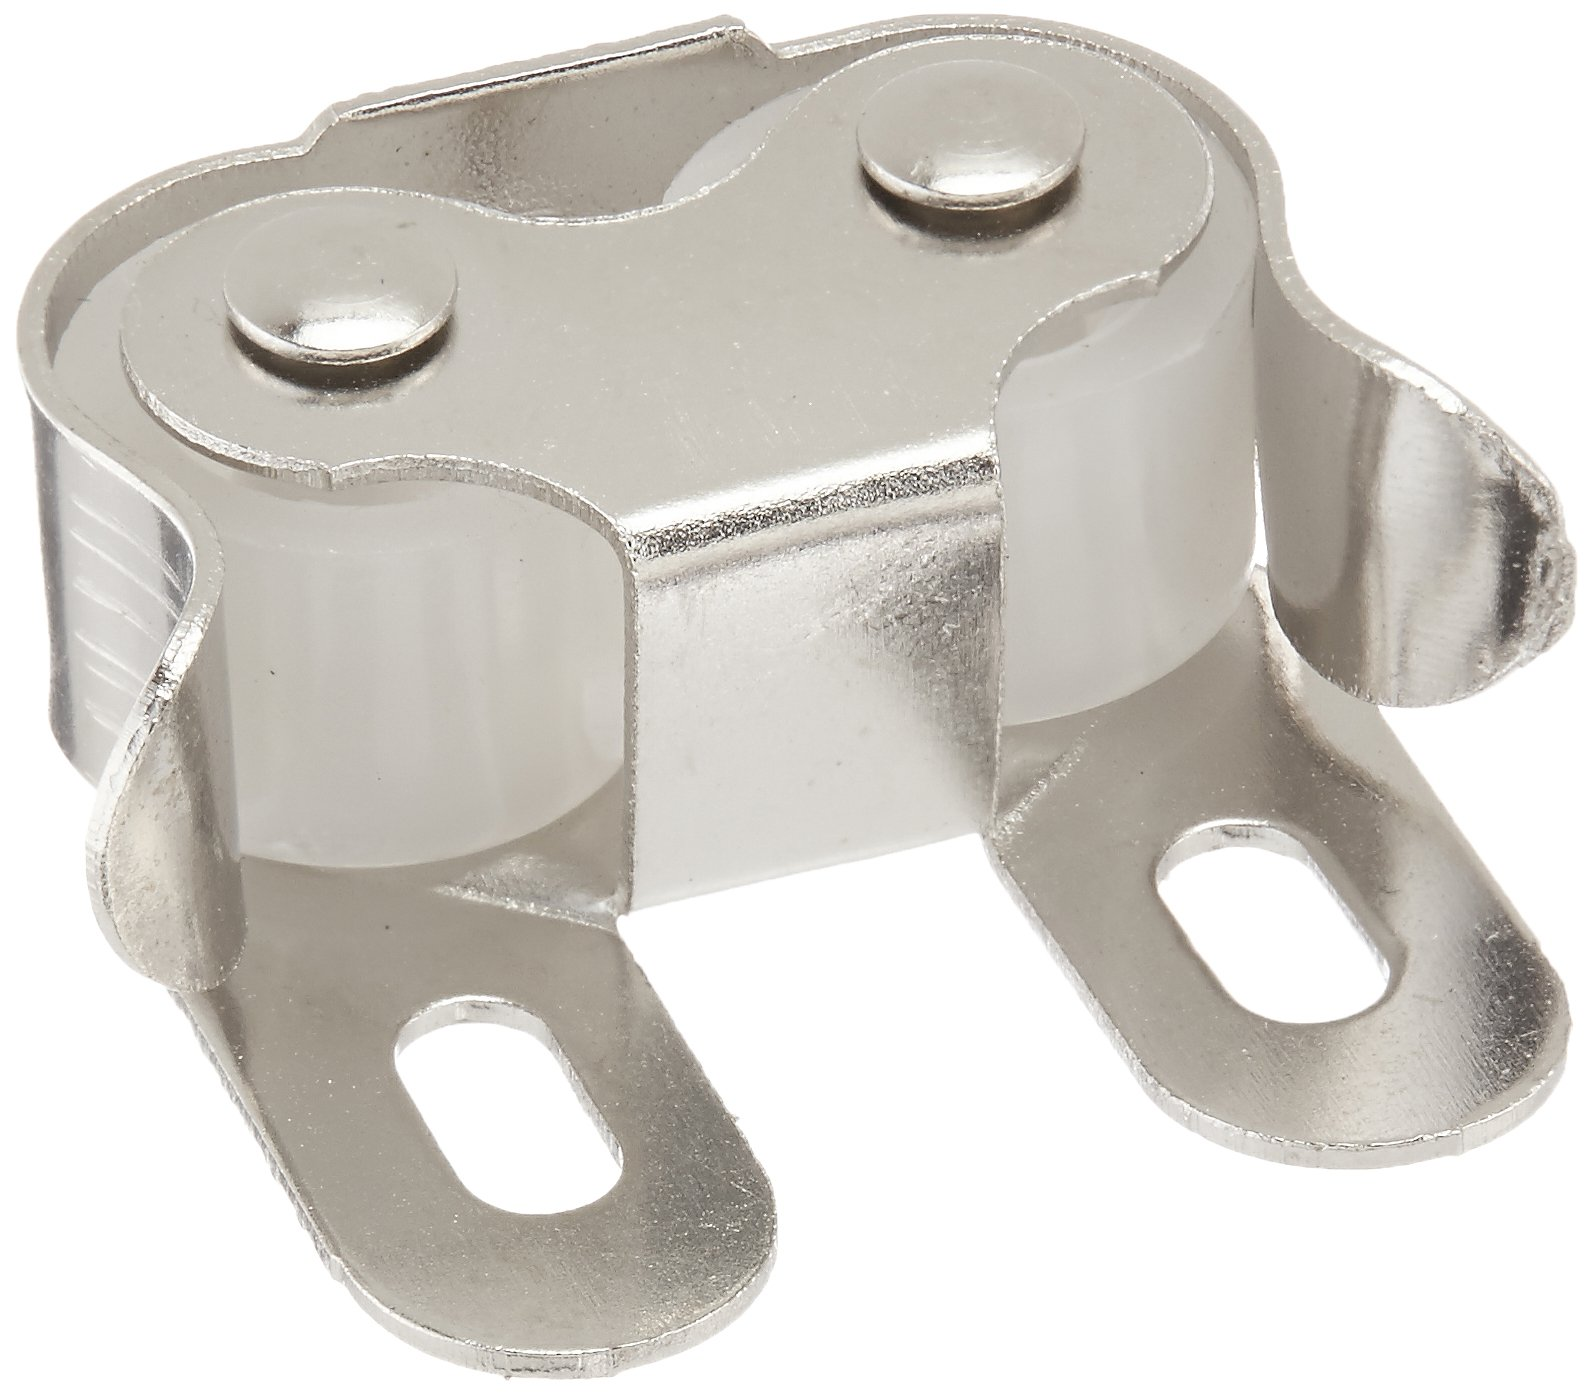 Amerock BP347414 Roller Catch - Nickel by Amerock (Image #1)